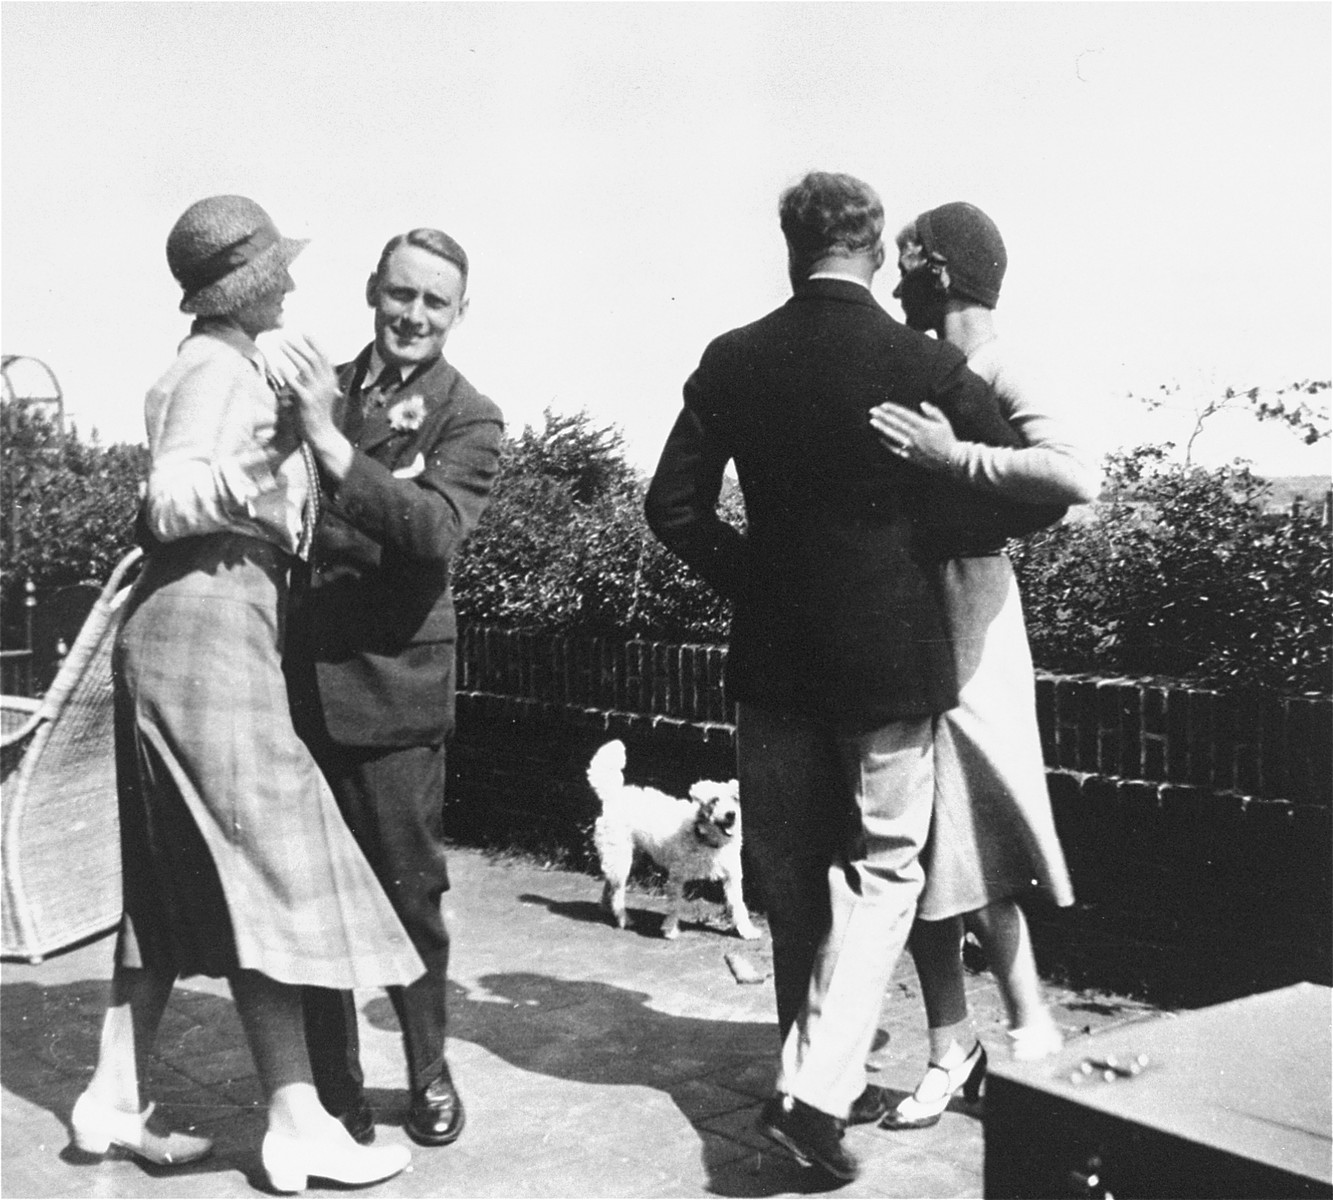 Willem Arondeus (left) and writer A. Roland Holst (right) dancing at a garden party.    Later during the war, Arondeus led a gay resistance group in Amsterdam that was responsible for bombing the Amsterdam Population Registry offices.  The bombing was carried out in an effort to destroy government records on Jews and others sought by the Nazis.  As a result of the act, Arondeus was executed in 1943.  His efforts as a rescuer have been recognized by Yad Vashem and the USHMM.